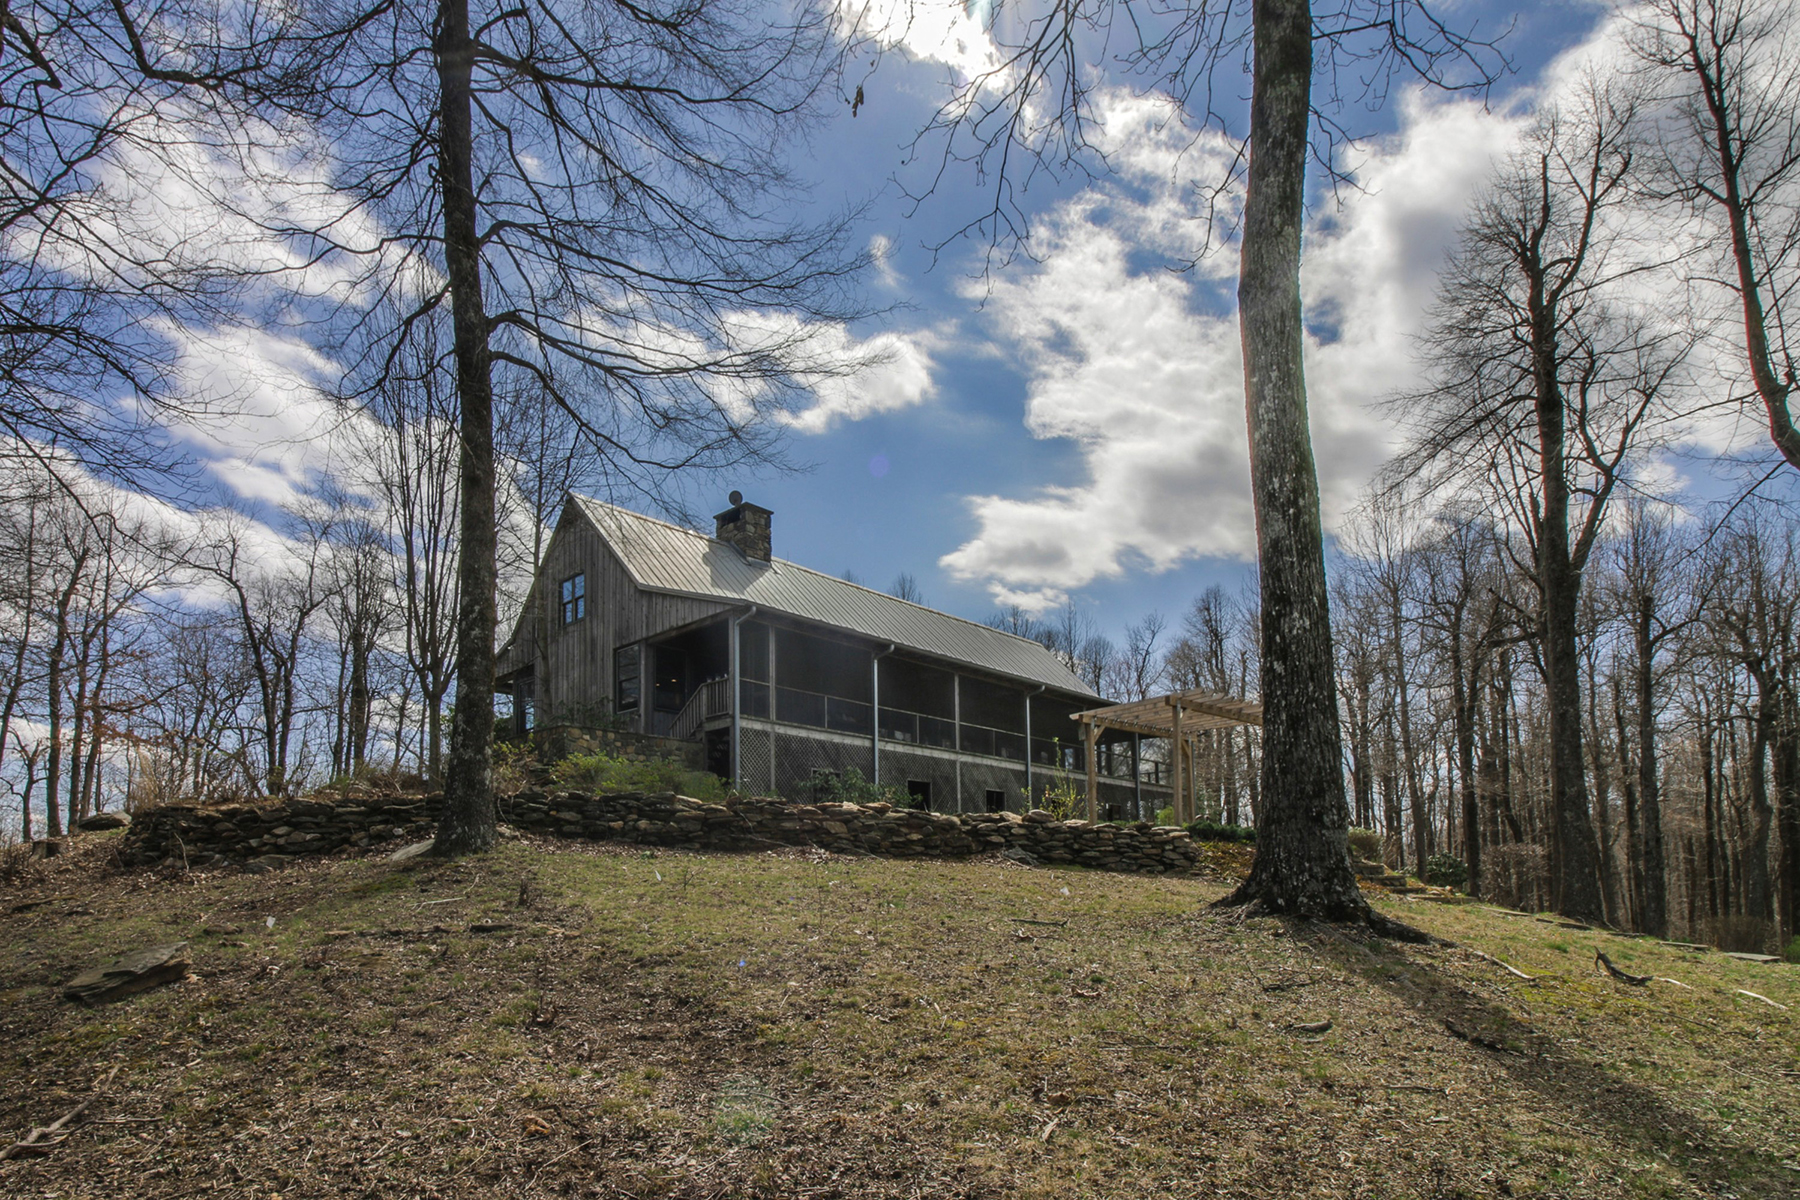 Single Family Home for Sale at ULTIMATE PRIVACY ON 153 ACRES 5042 Hogback Mountain Rd, Tryon, North Carolina, 28782 United States